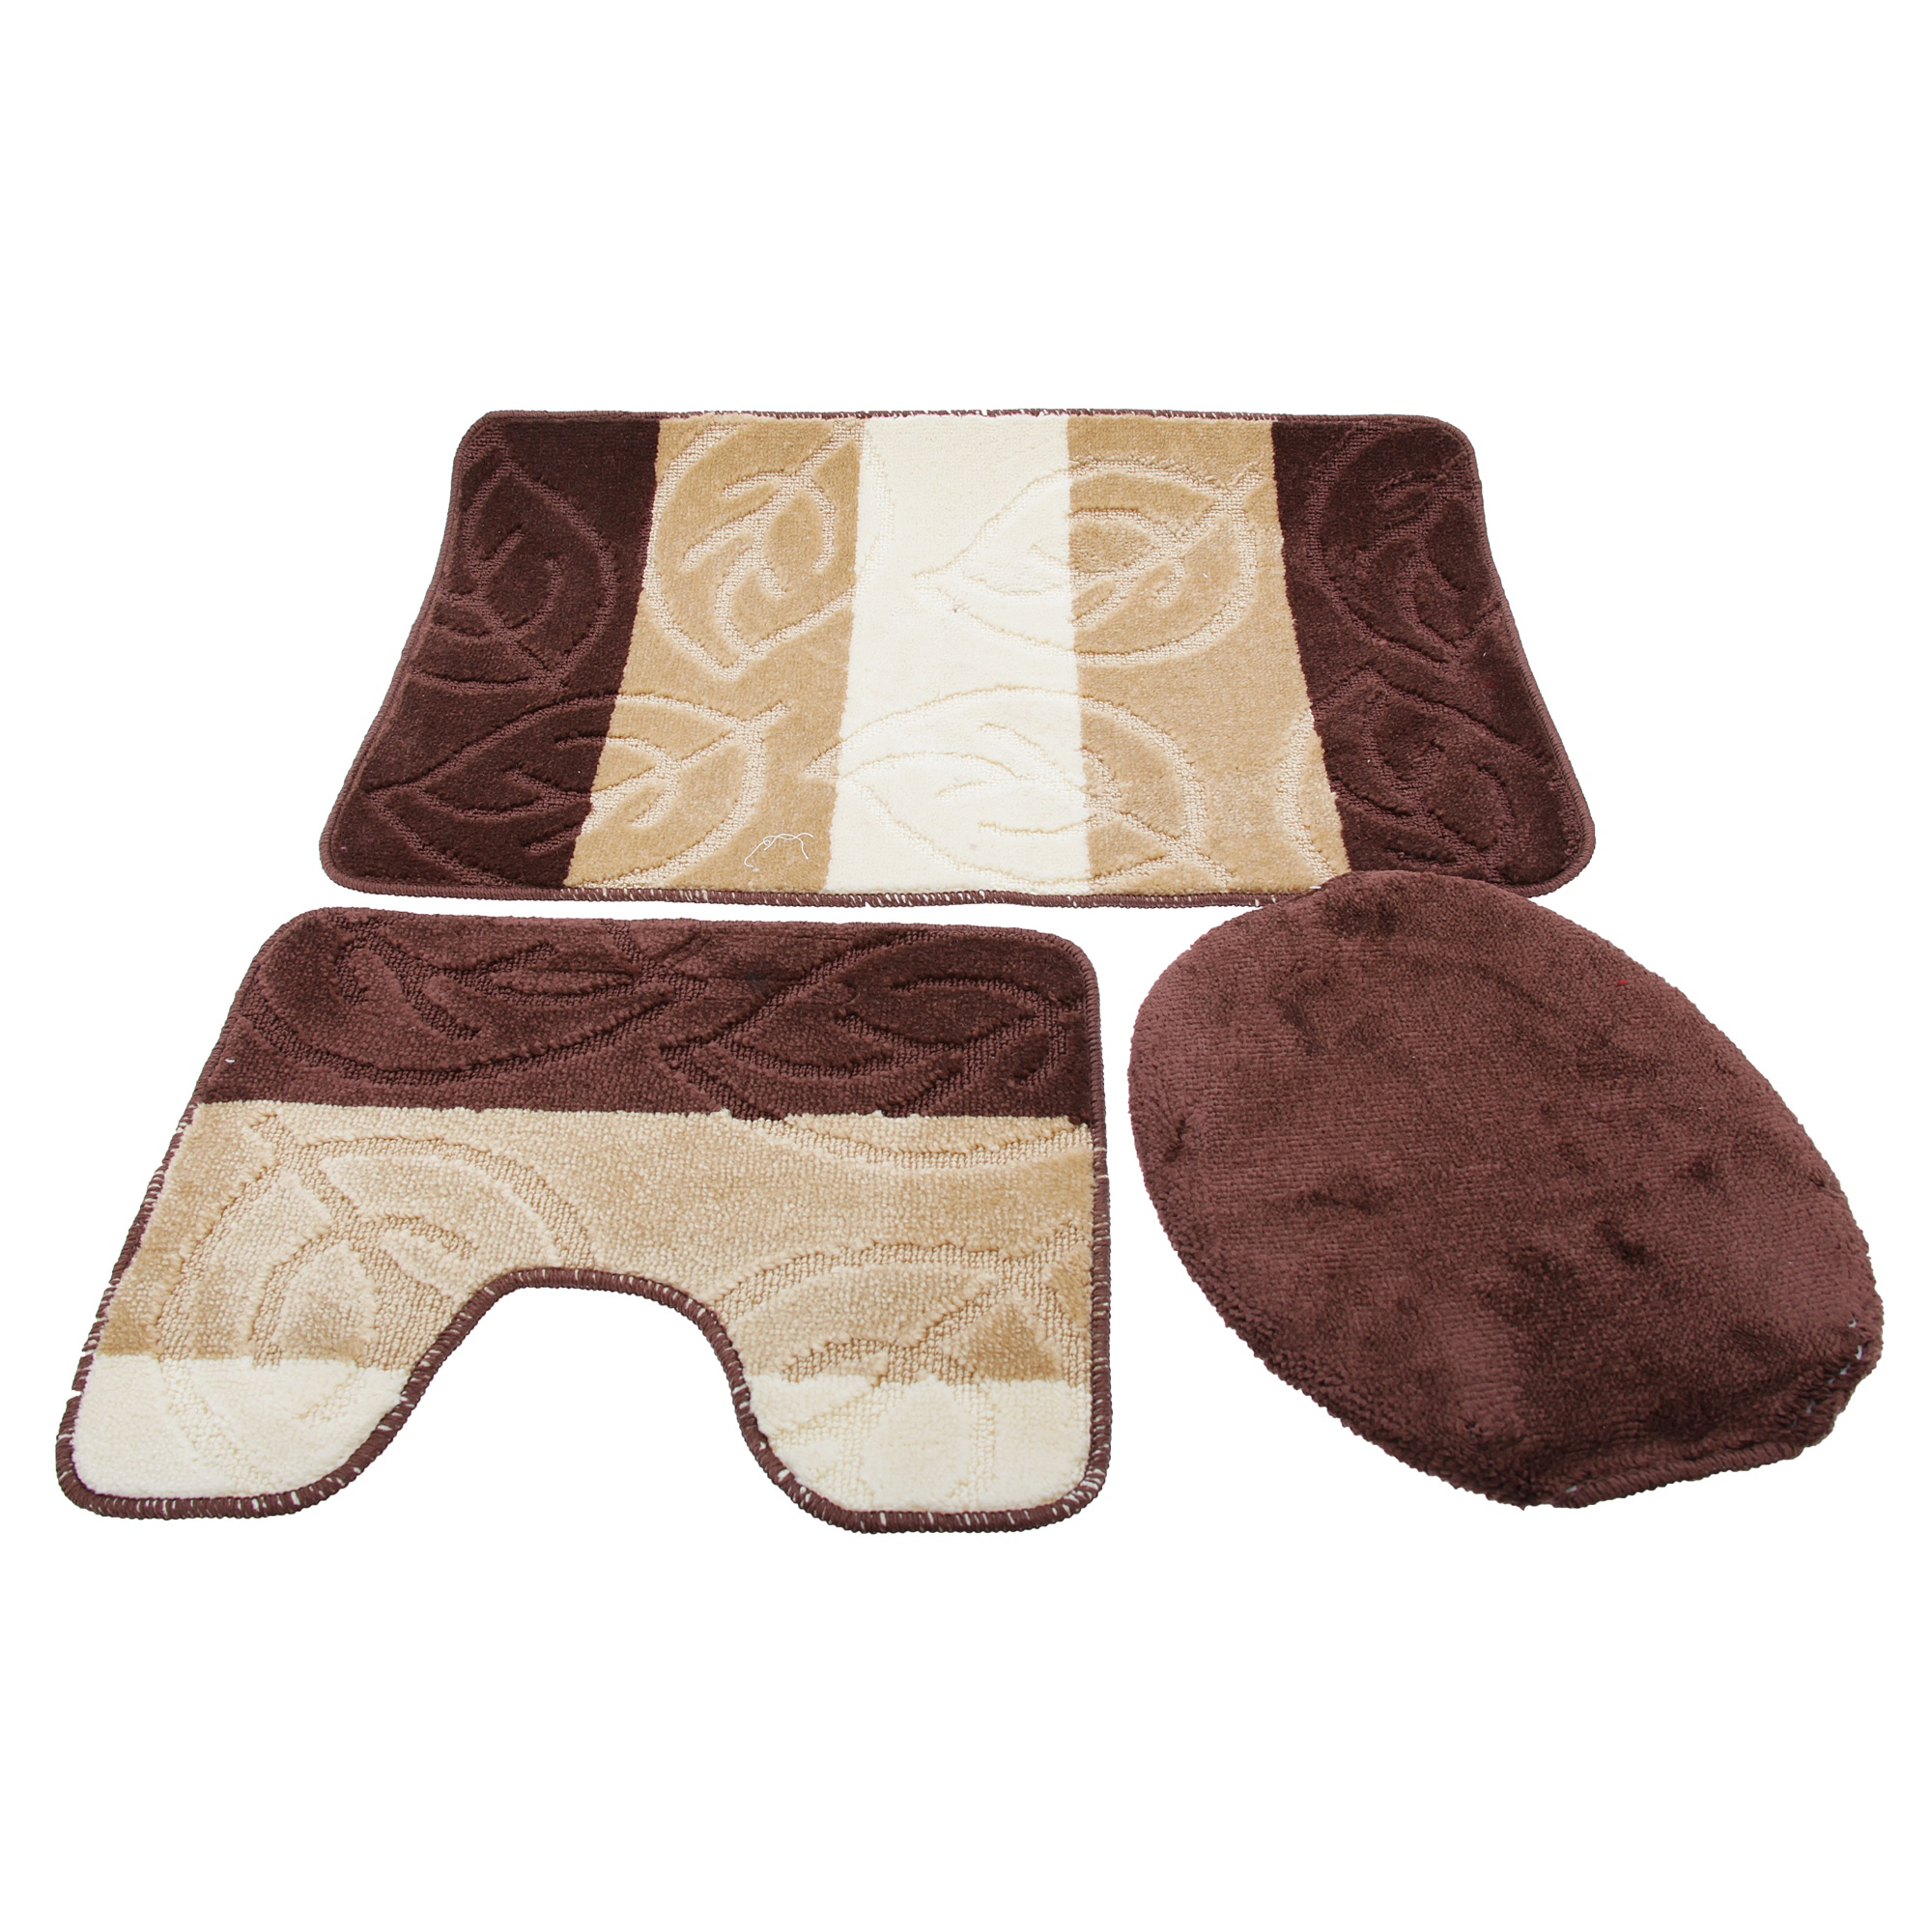 3 piece leaf design bath pedestal bathroom mat set for 3 piece bathroom designs